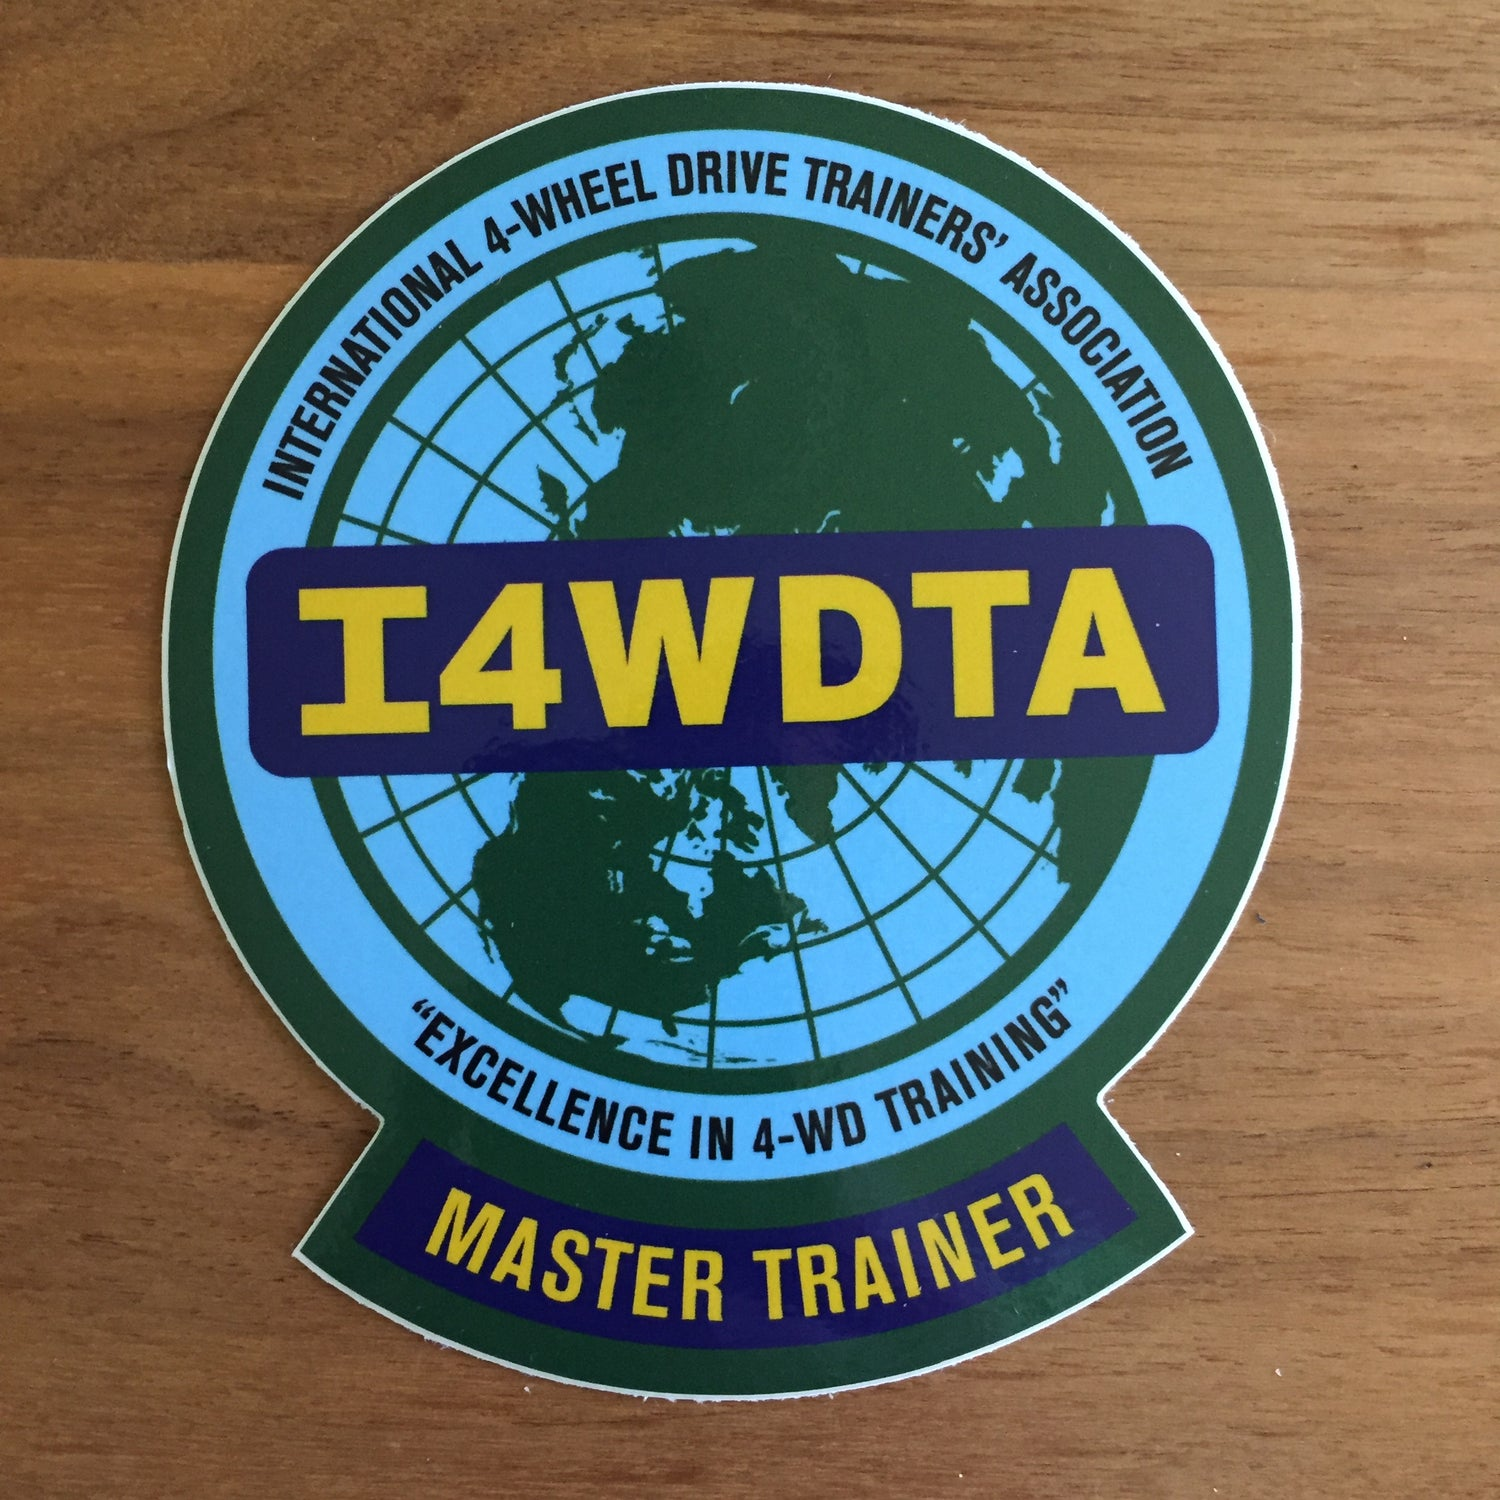 Image of I4WDTA MASTER TRAINER Vinyl Decal